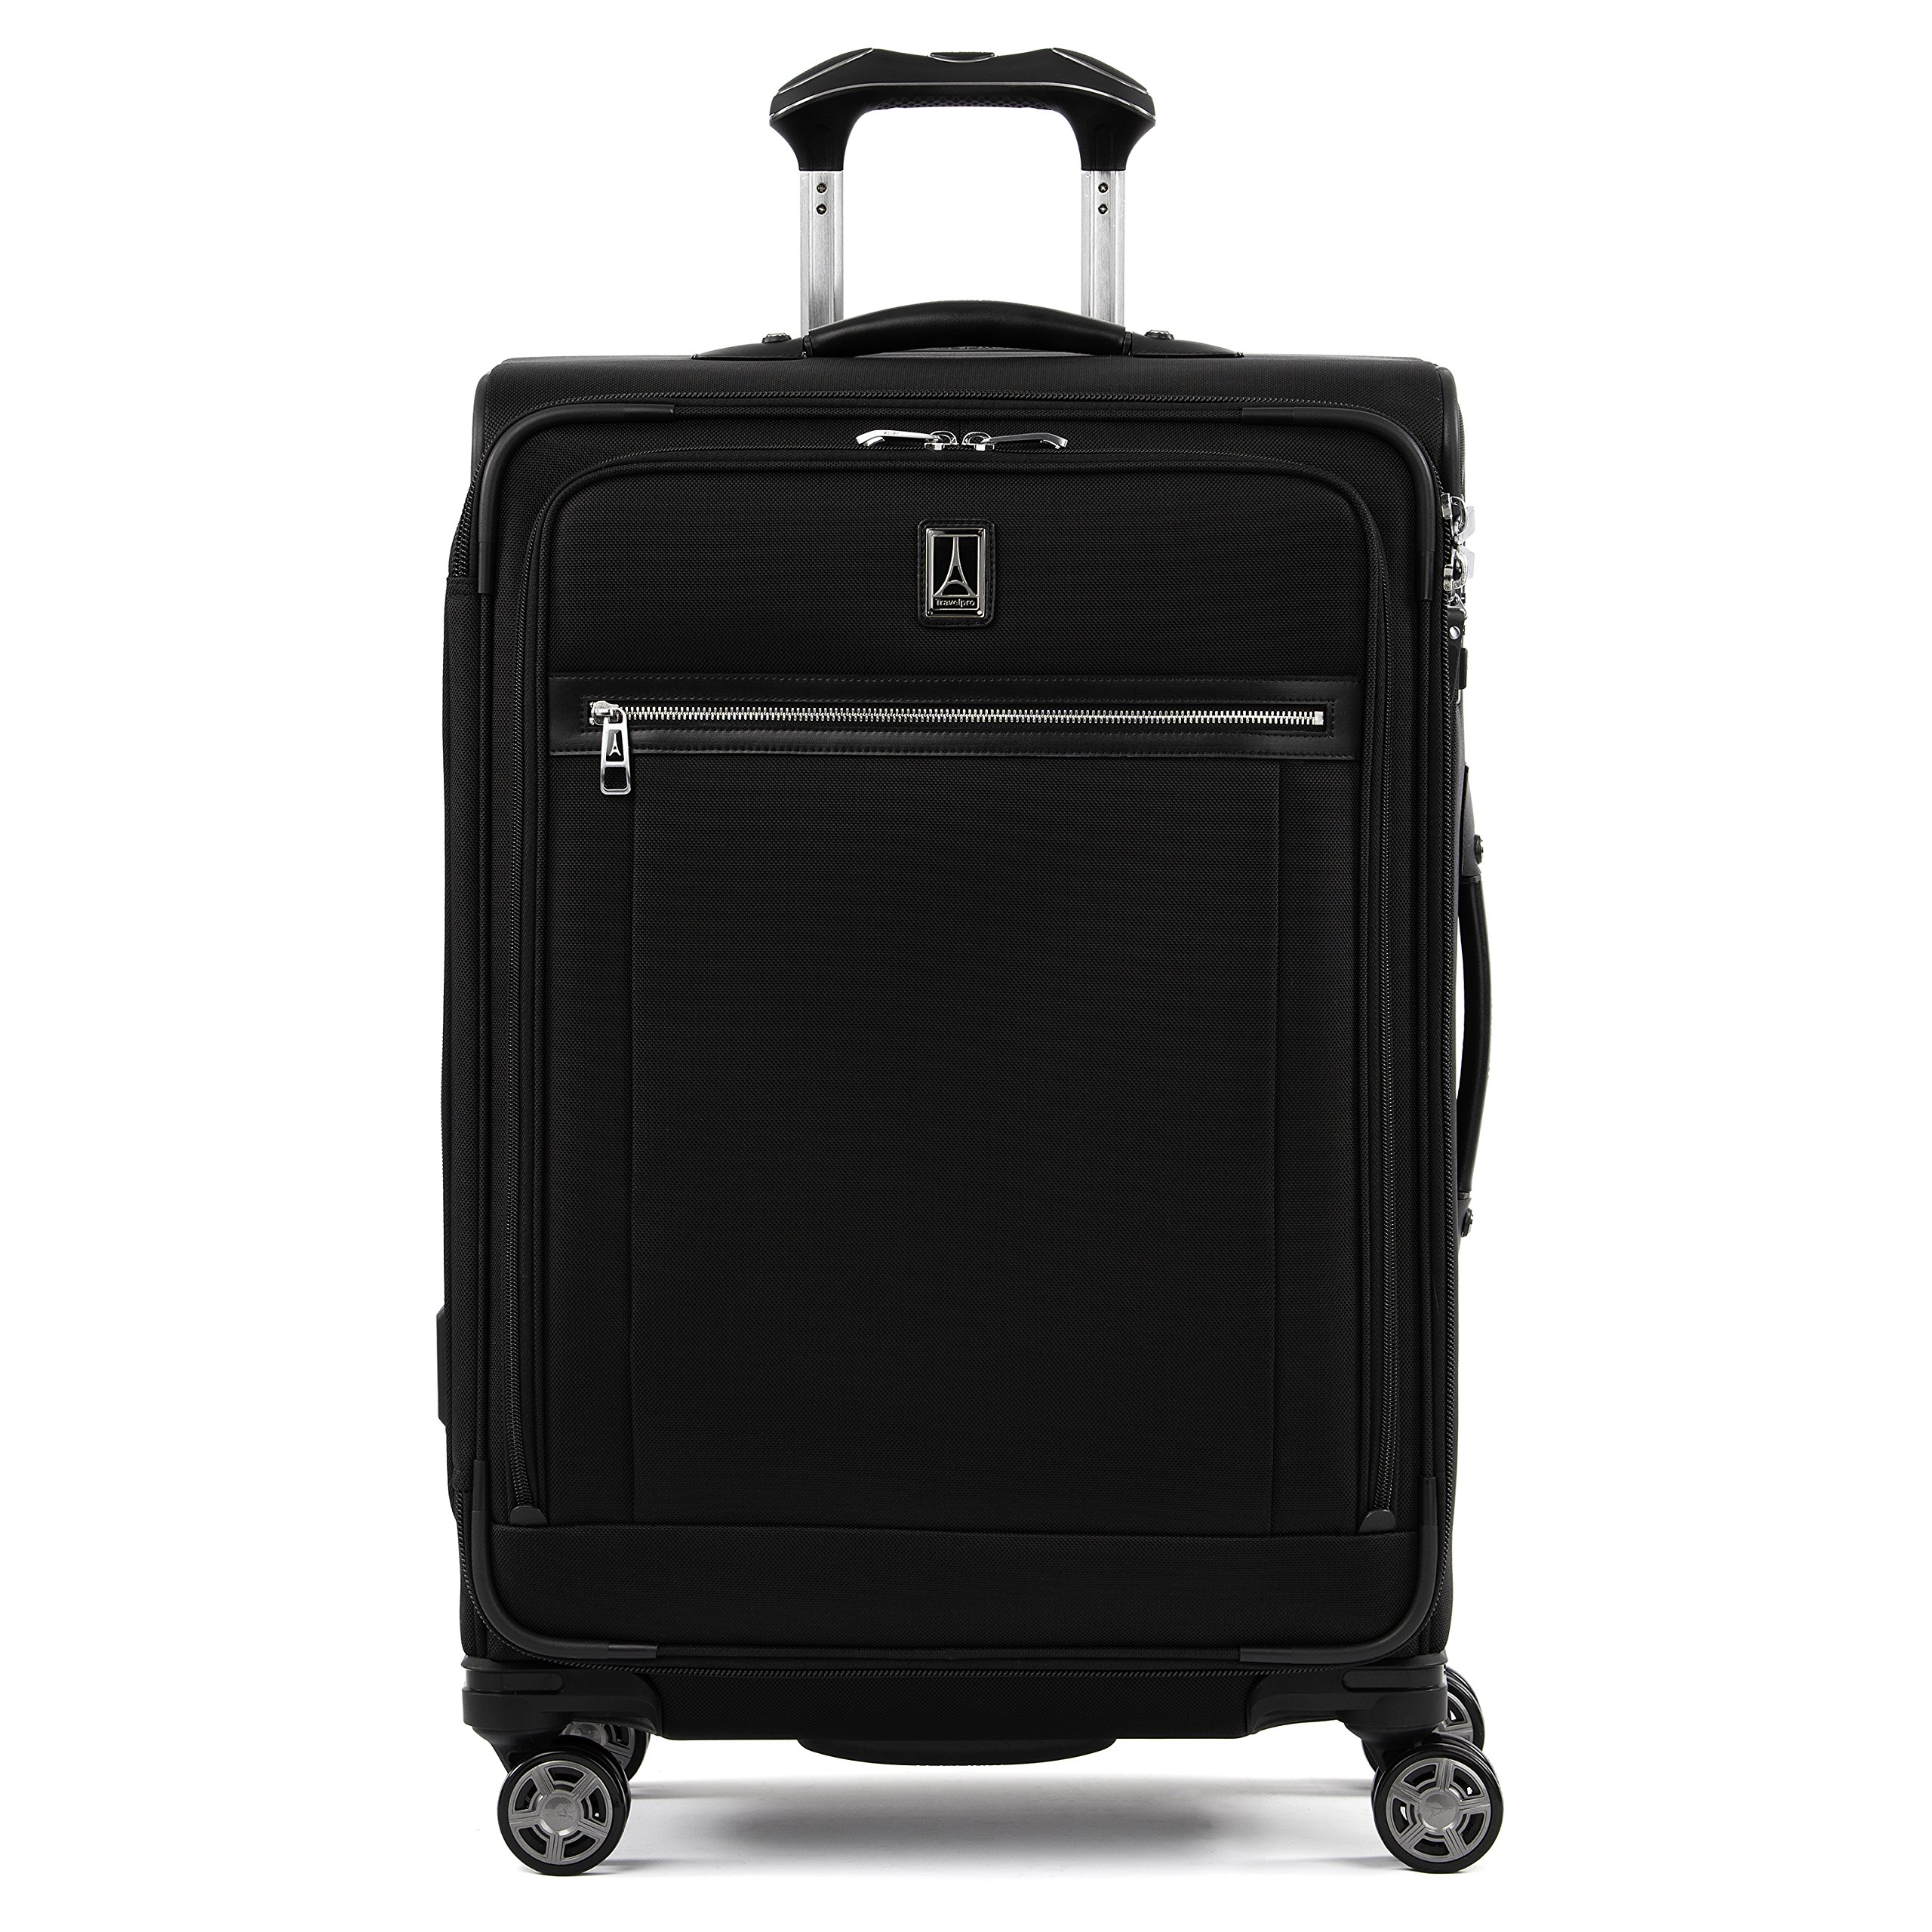 Travelpro Platinum Elite Expandable Spinner Suitcase, Shadow Black